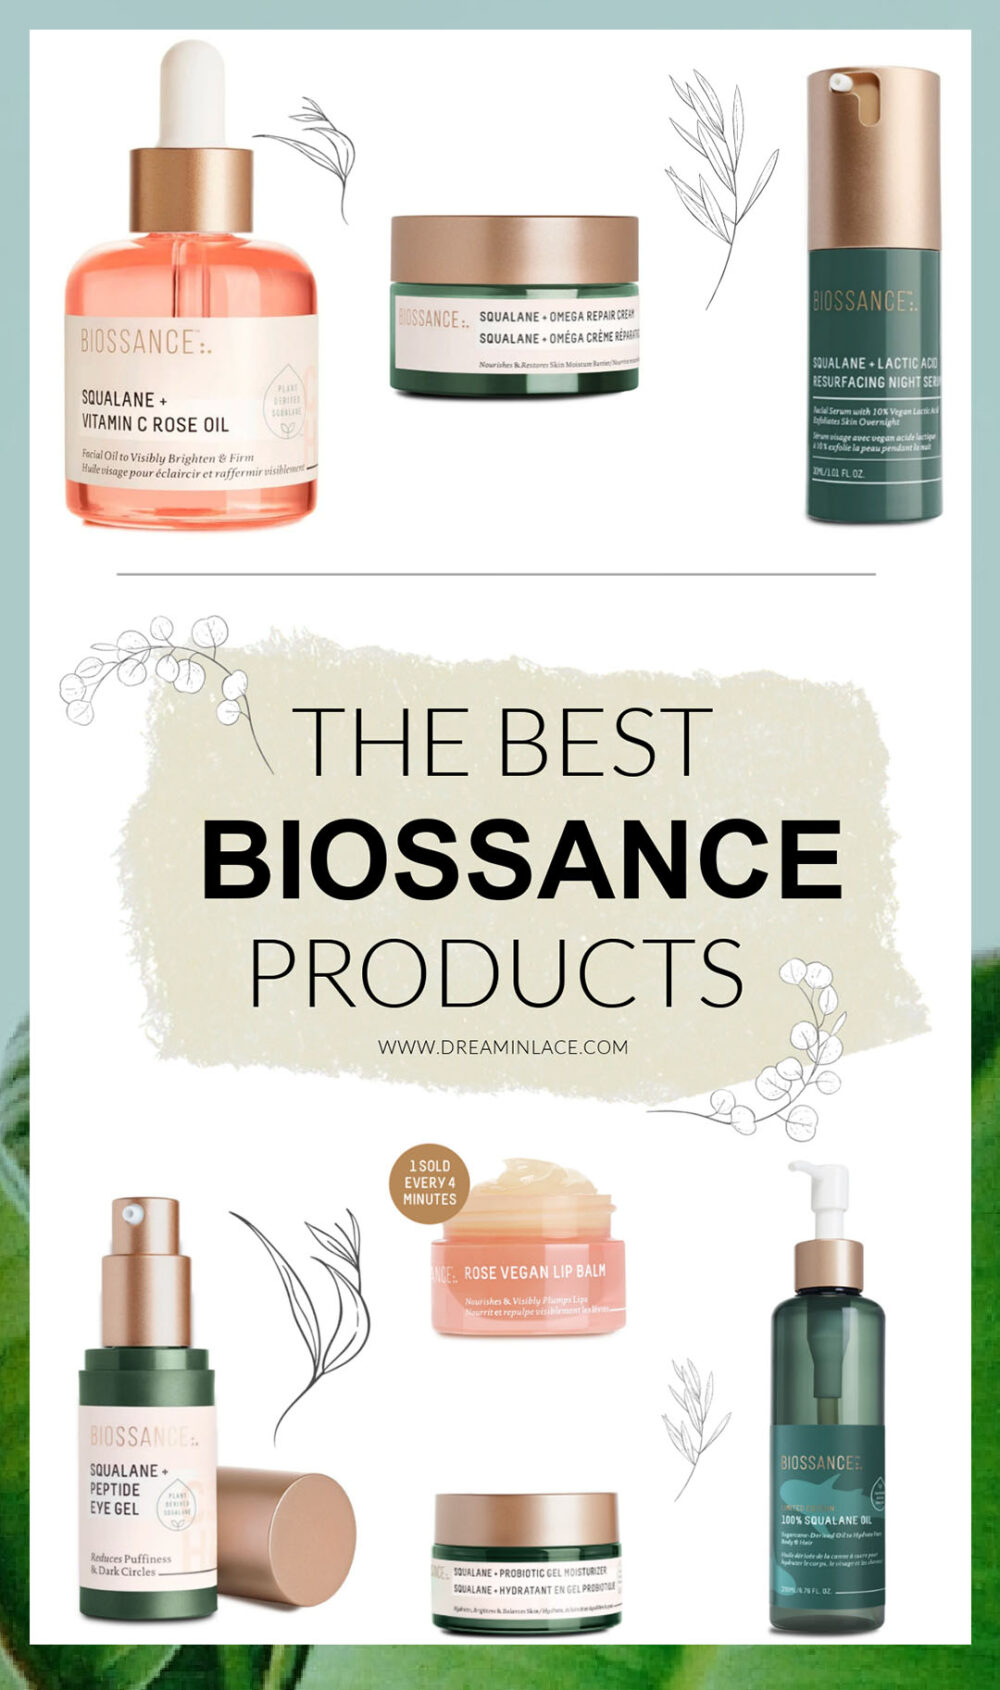 The Best Biossance Products I Clean Beauty and Skincare at Dreaminlace.com #CleanBeauty #cleanskincare #ecofriendly #beautyblog